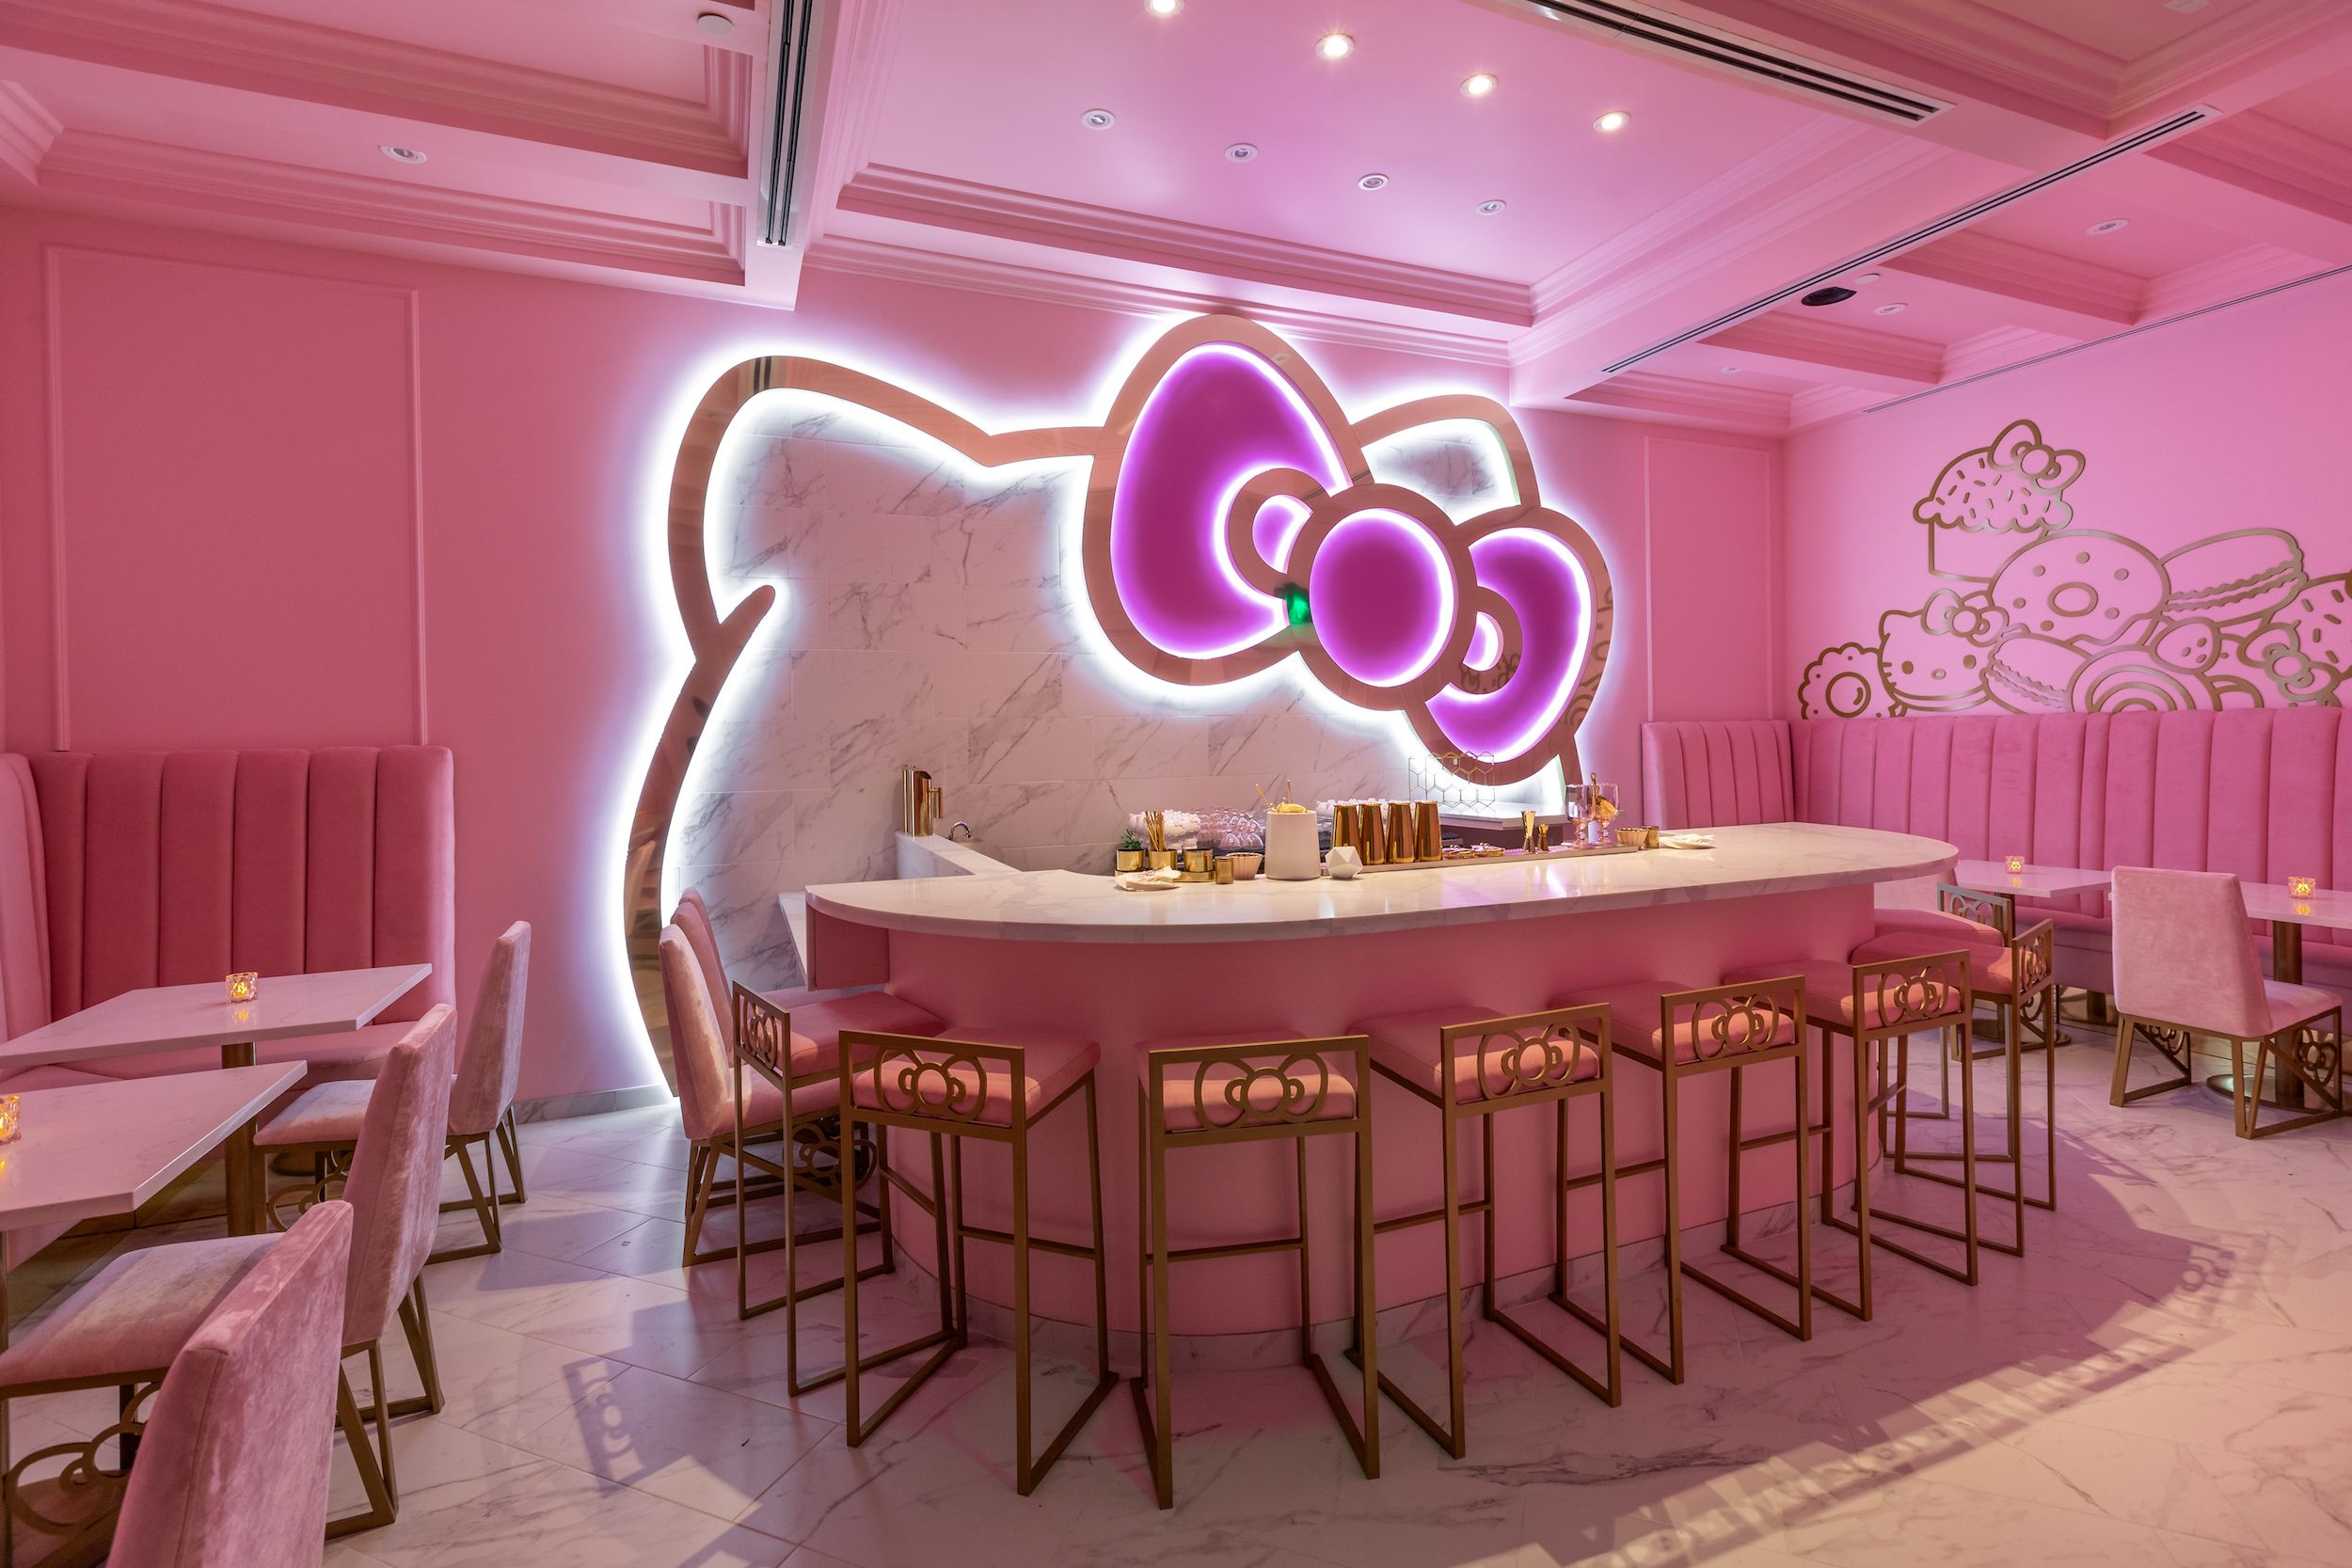 The Hello Kitty Cafe's Fall Menu Will Make You Want To Book A Trip To California